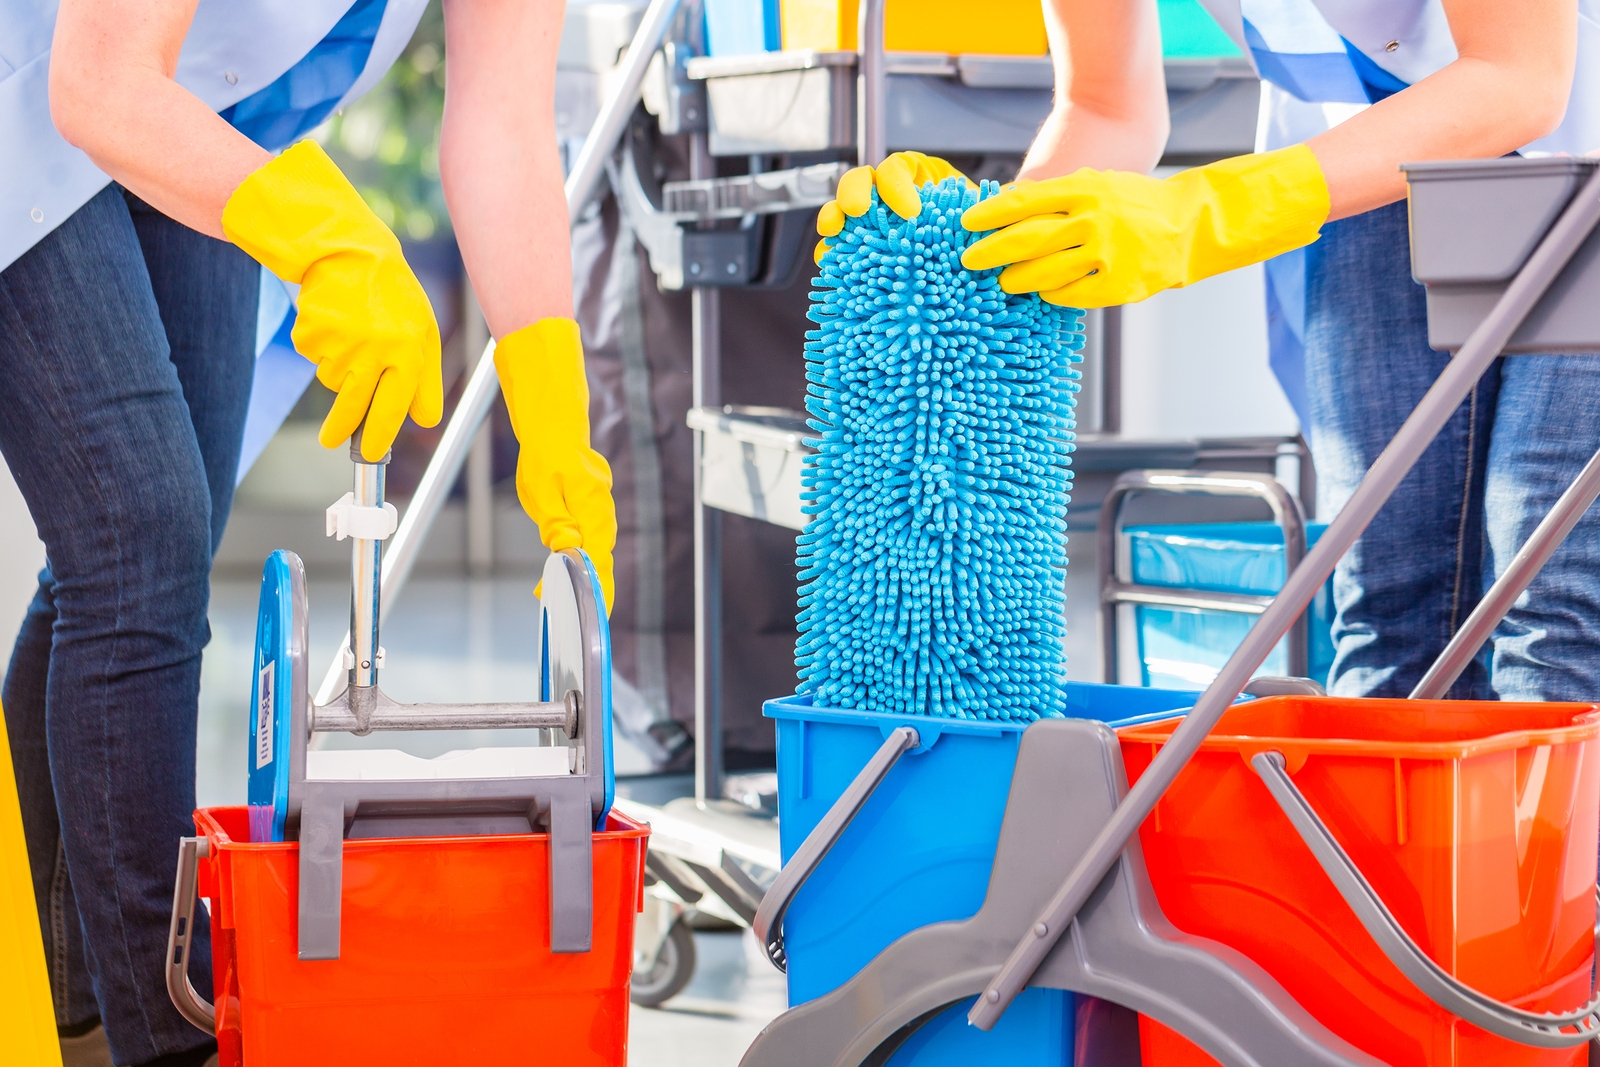 Commercial Cleaning Company in Toms River NJ